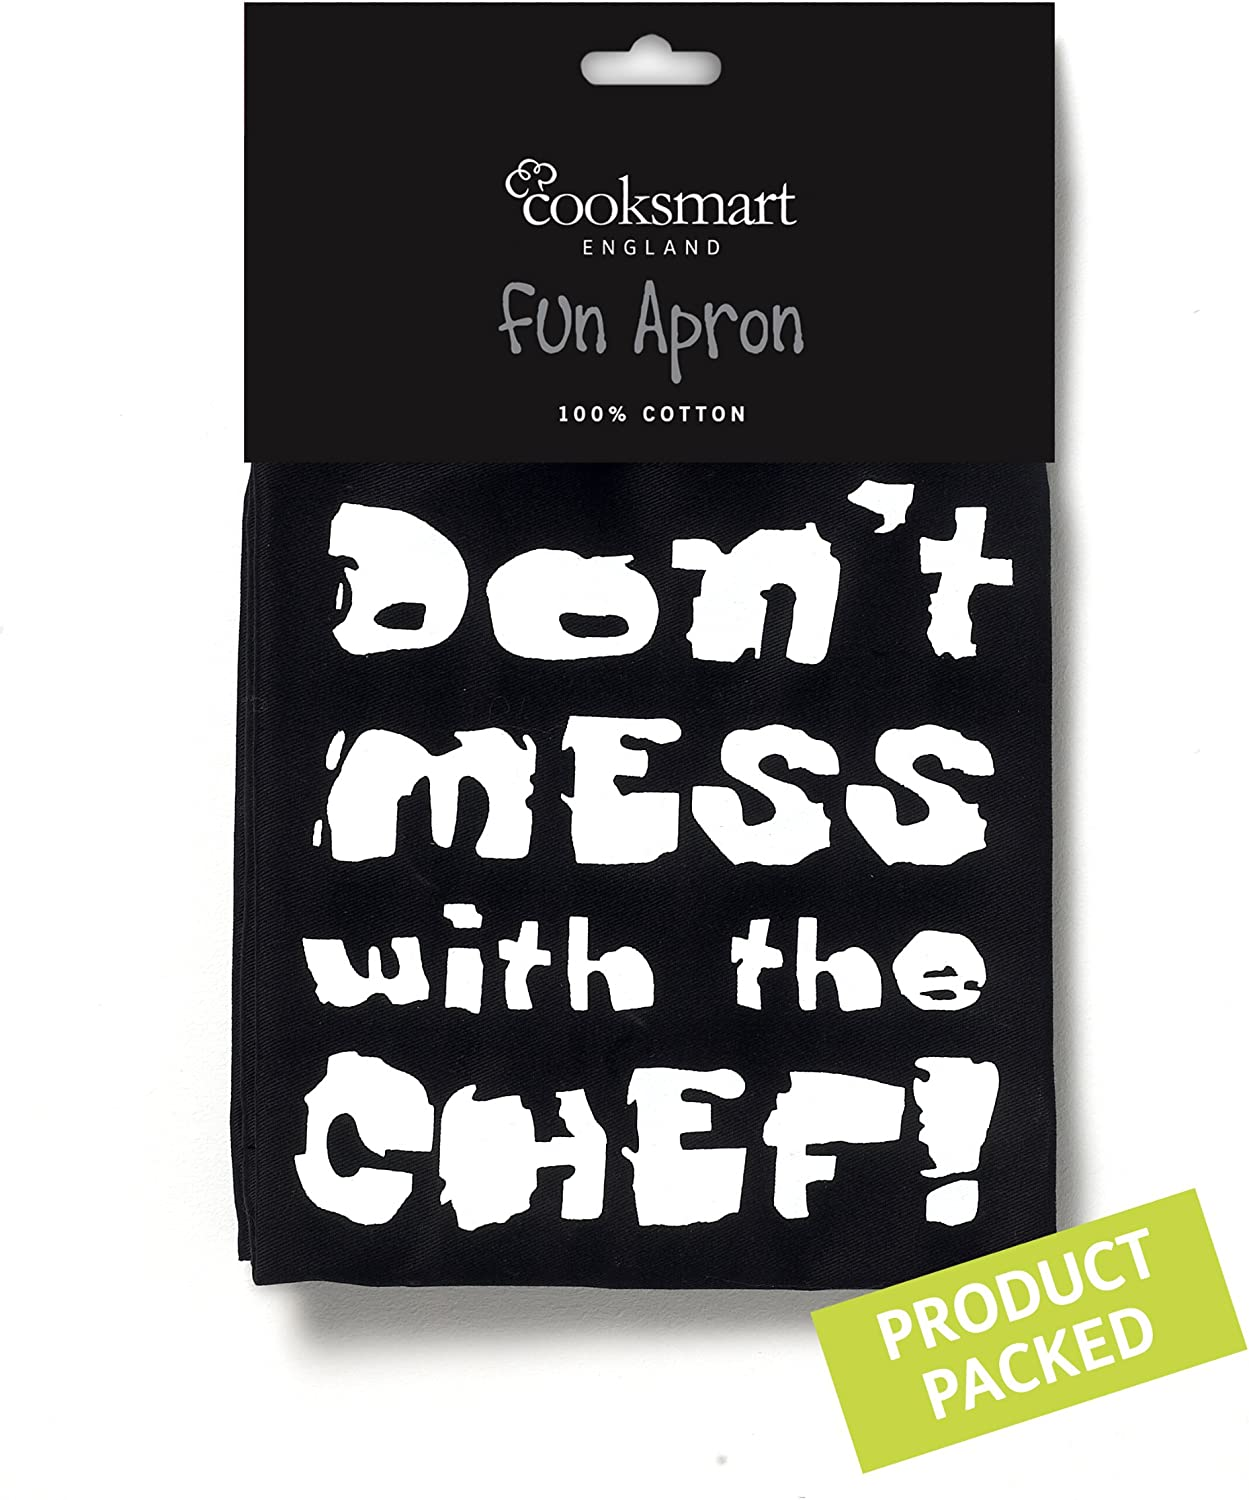 Don't Mess with the Chef Apron by Cooksmart